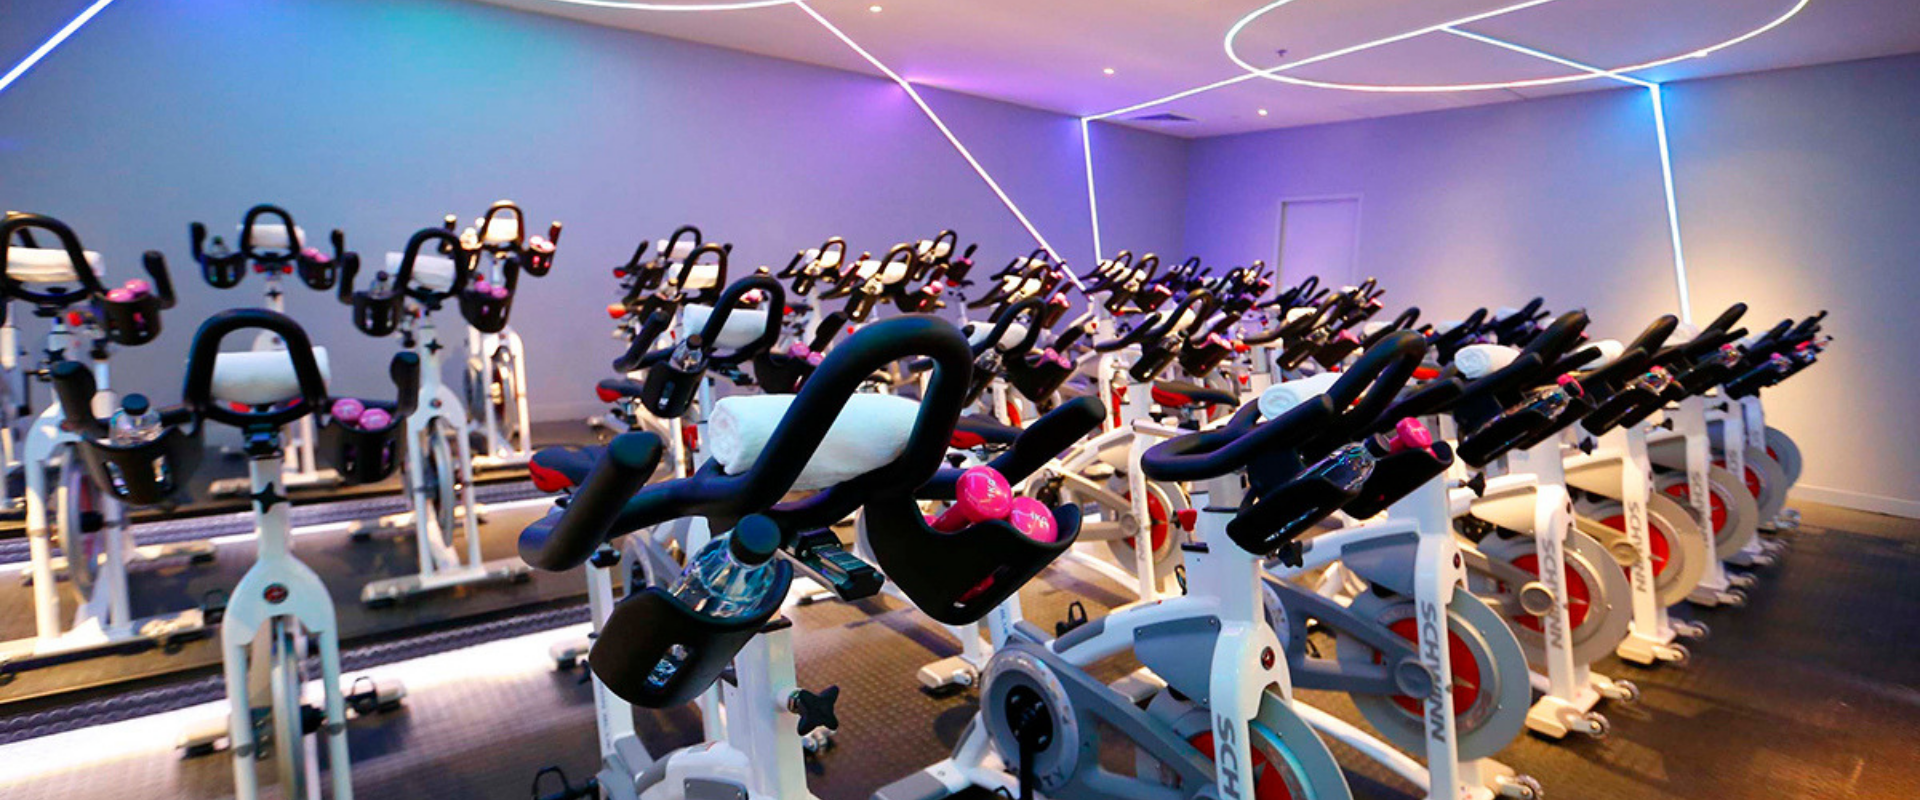 Spin Class and Pilates Bangkok - The Perfect Duo for Your Health